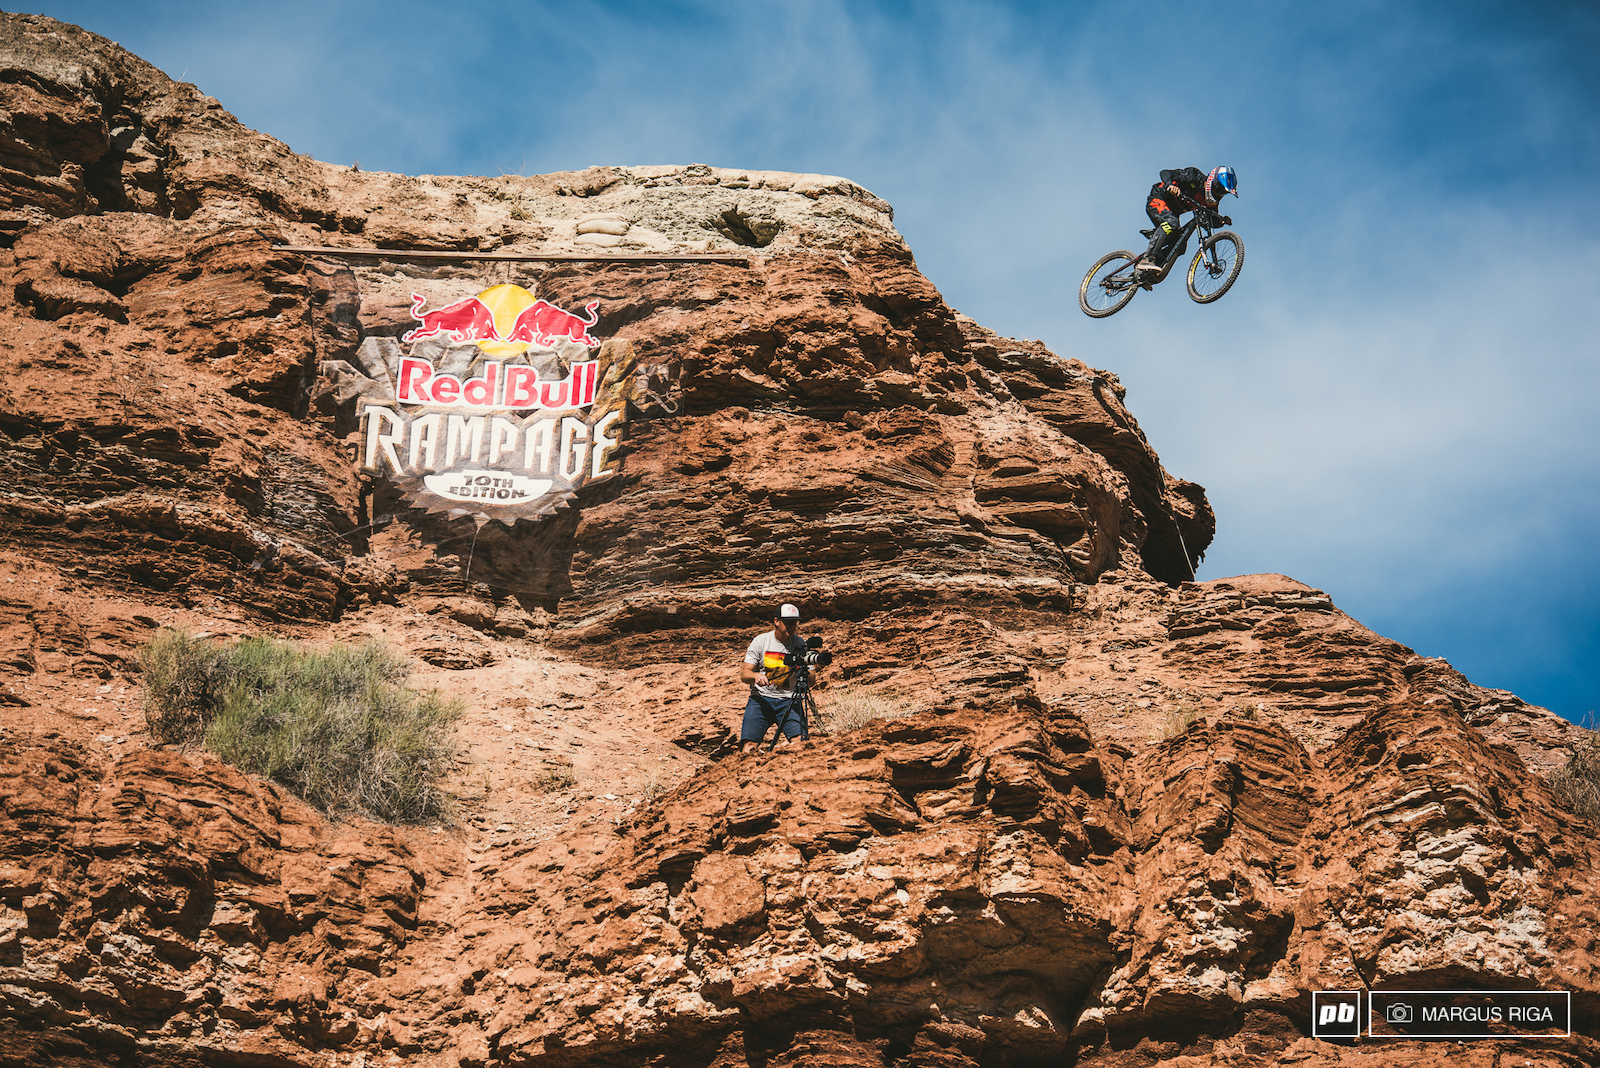 Anthony Messere s first Rampage. Probably not his last.